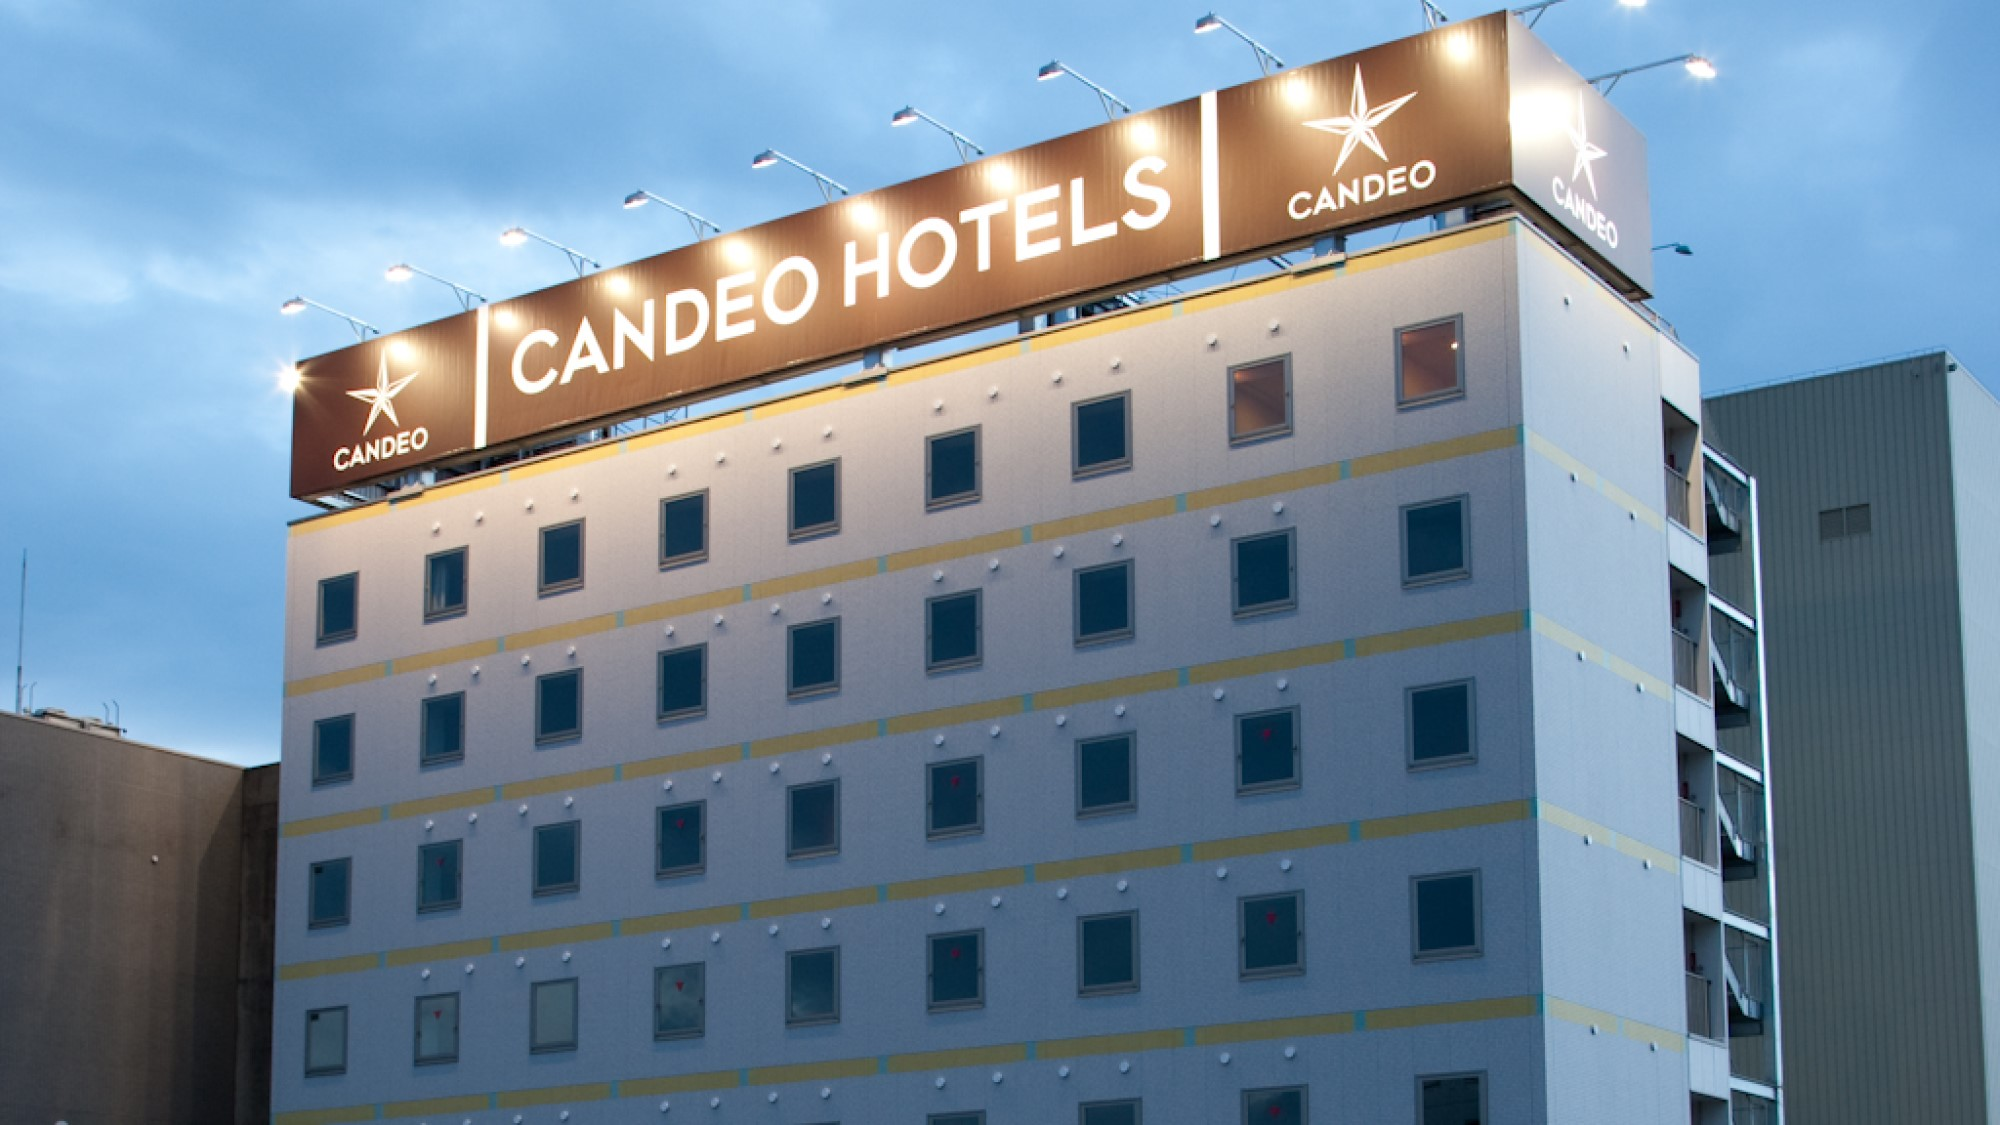 CANDEO HOTELS(カンデオホテルズ)上野公園